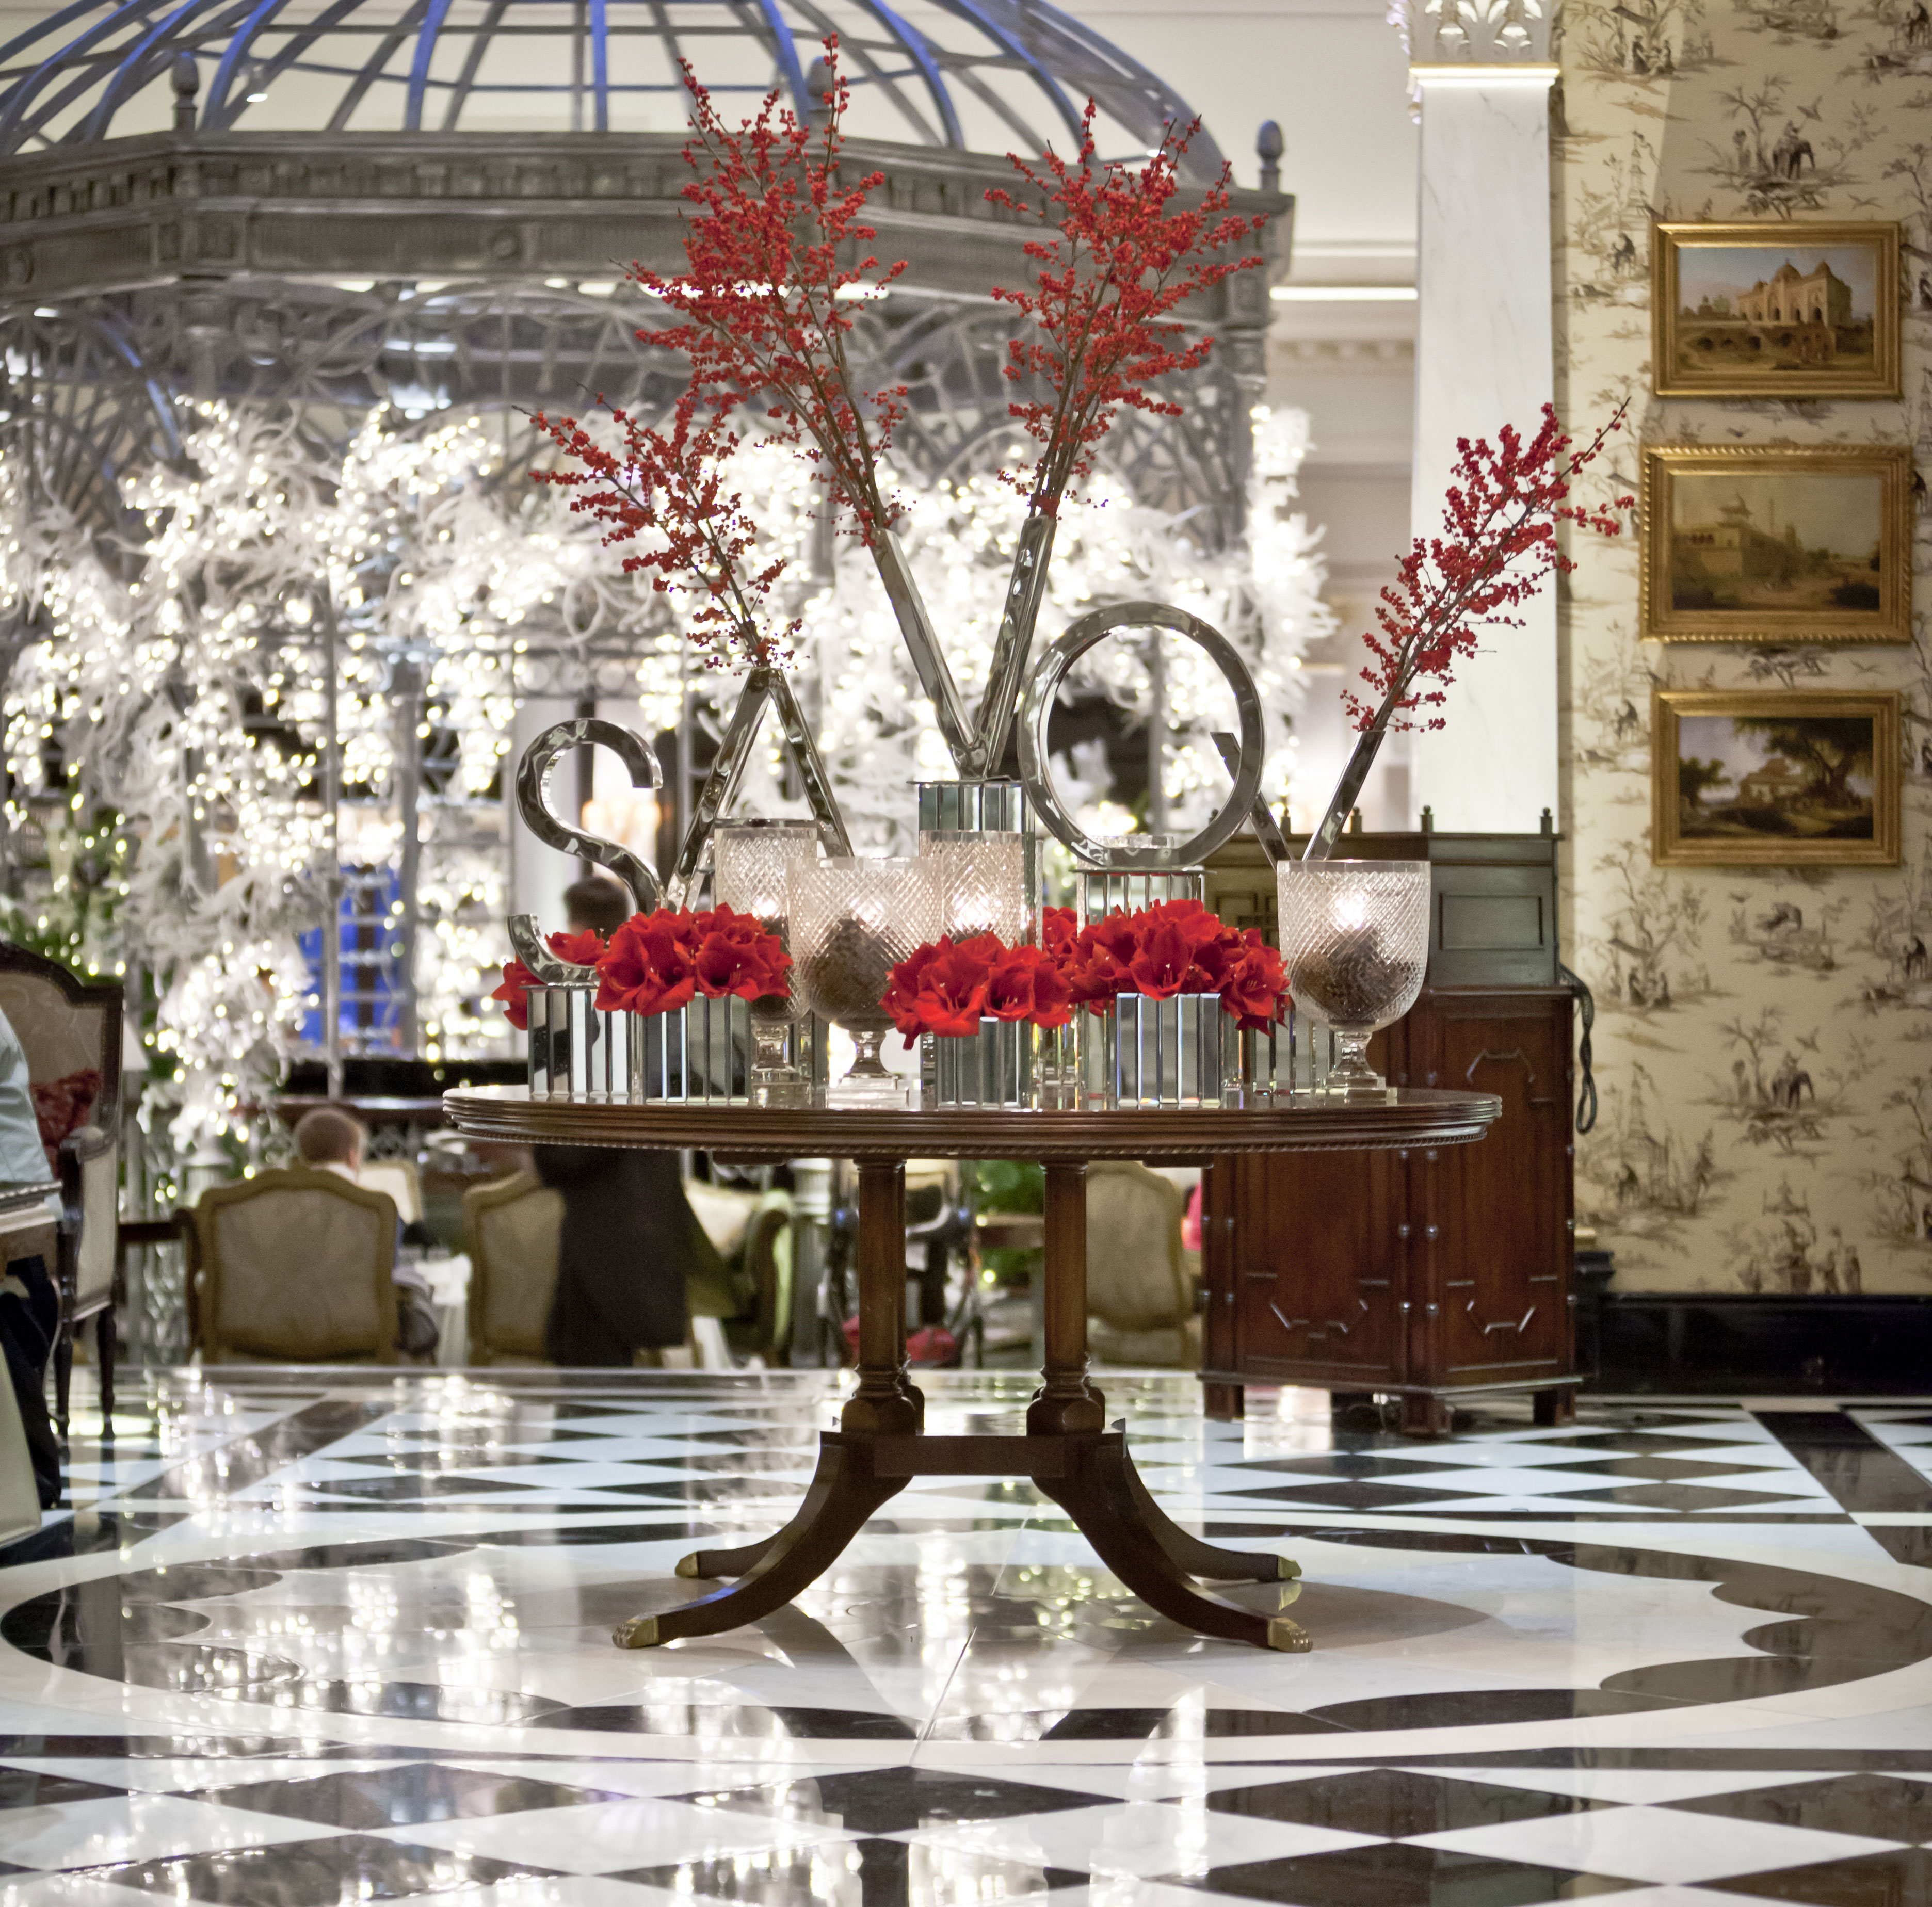 Image of The Savoy Thames Foyer